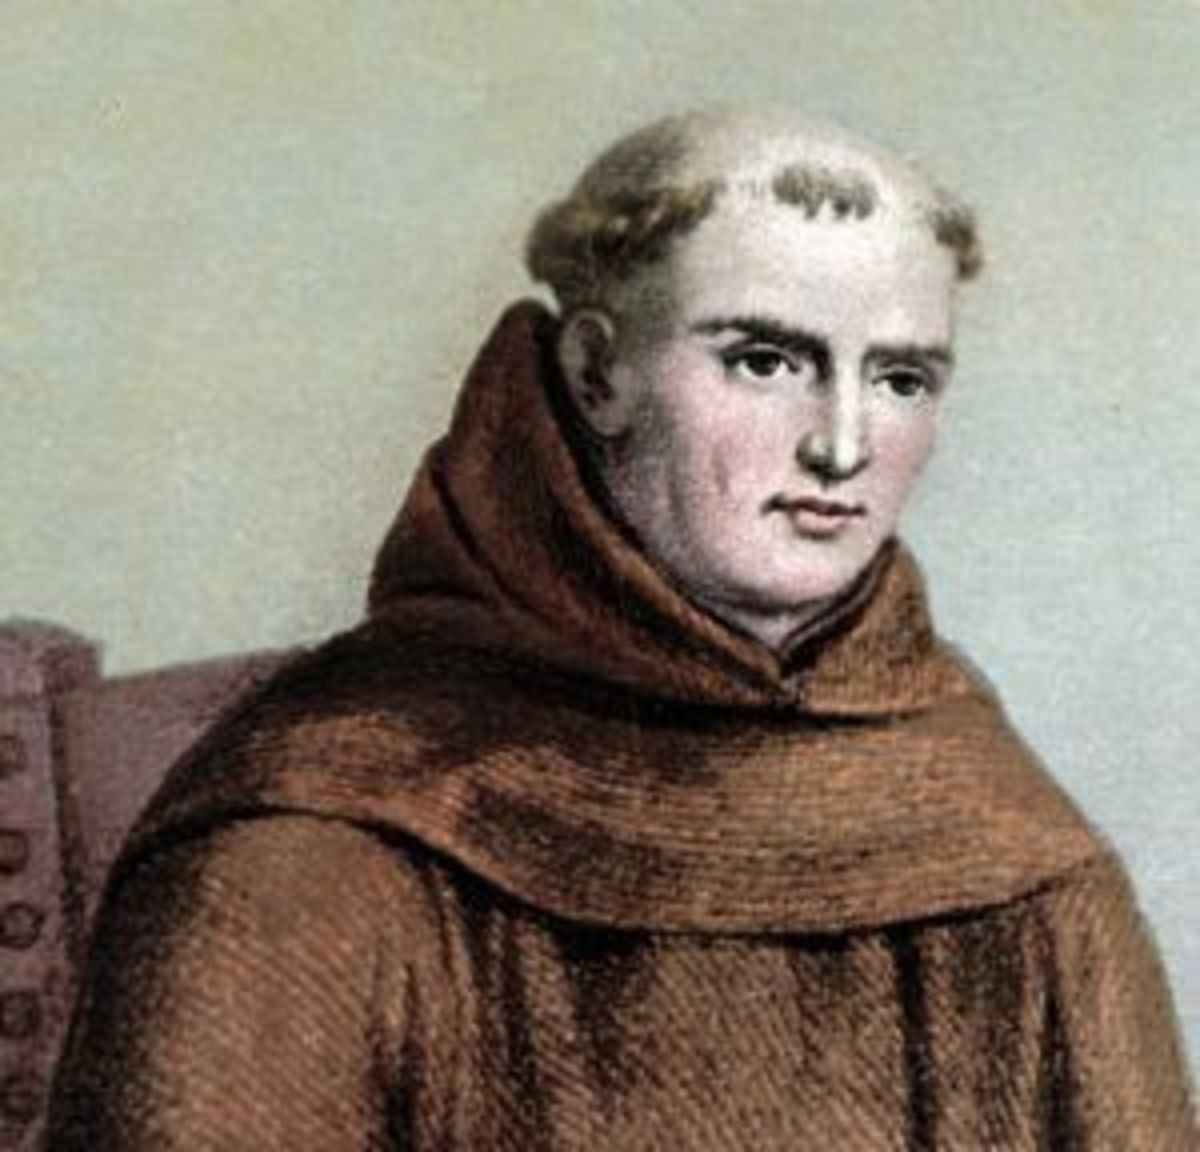 Saint or Sinner? Known as the Father of California Missions, Father Serra